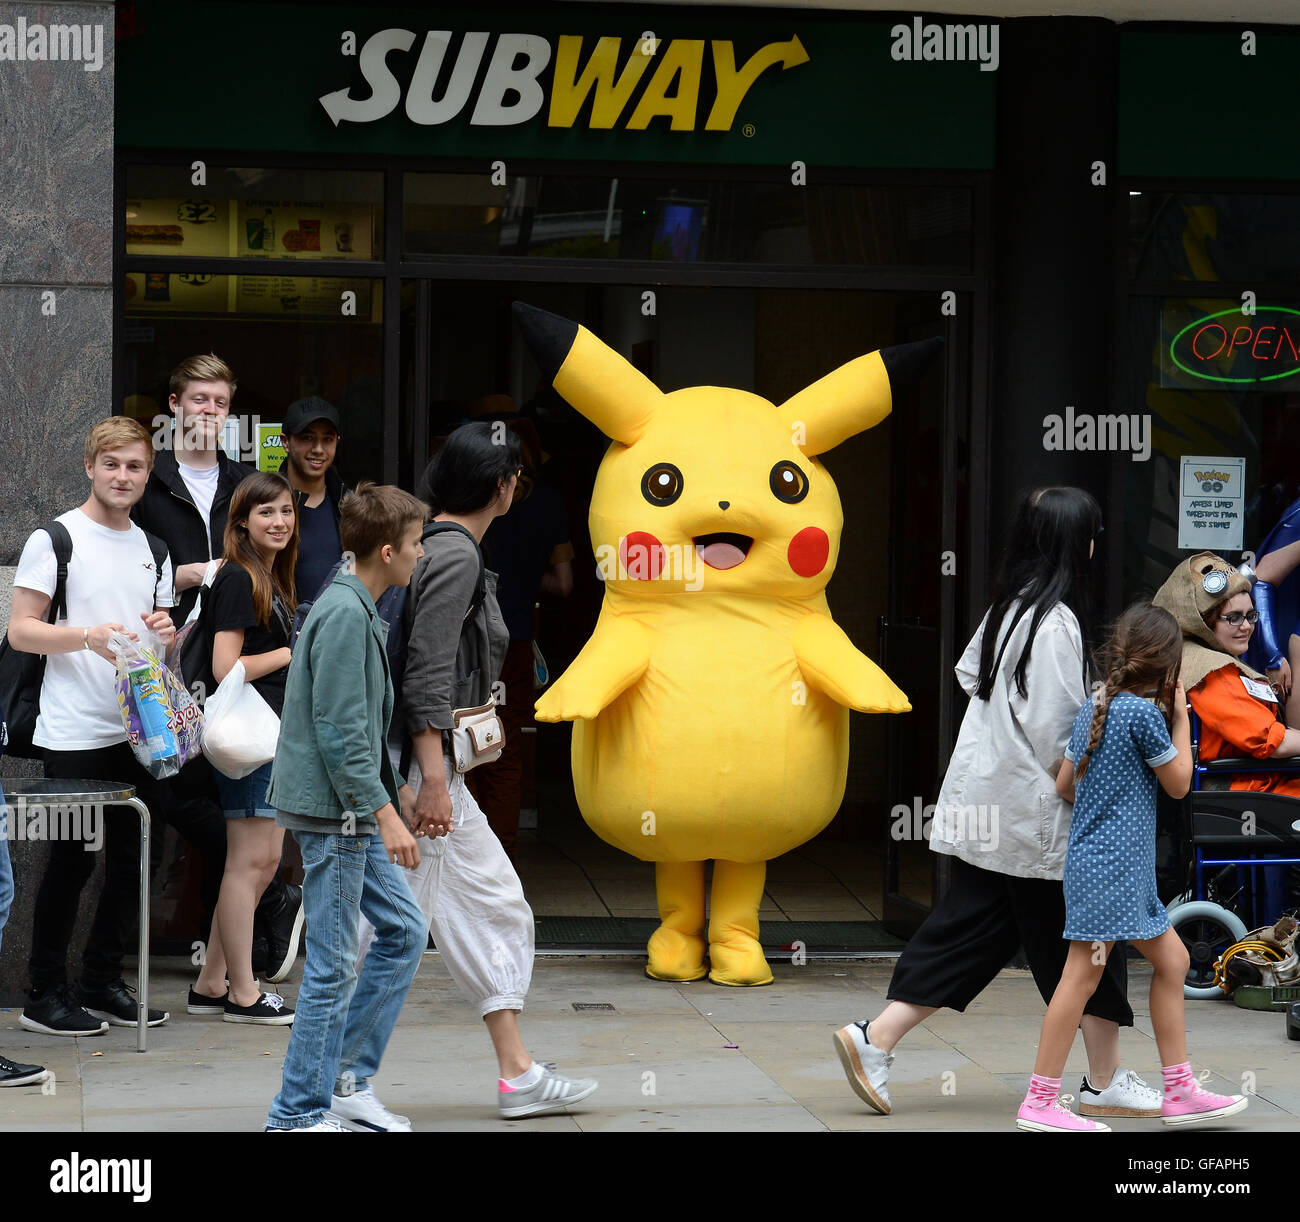 Pikachu The Short Chubby Yellow Pokeman Spotted Out And About In Manchester Even Taking A Minute To Grab Some Lunch At Subway